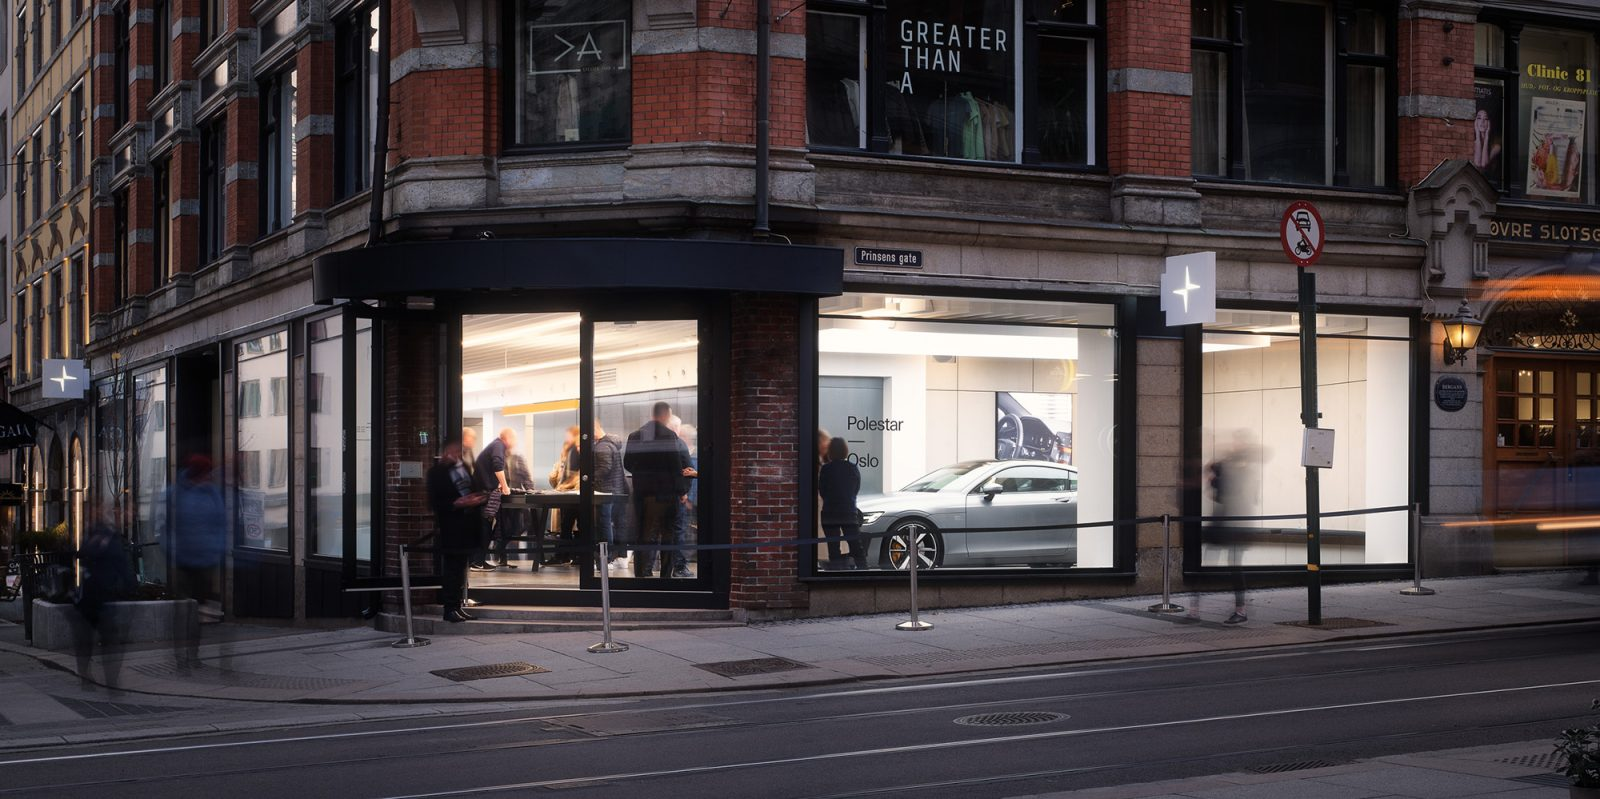 Buying a Polestar EV happens in gallery spaces with fixed prices and a giant tabletop screen